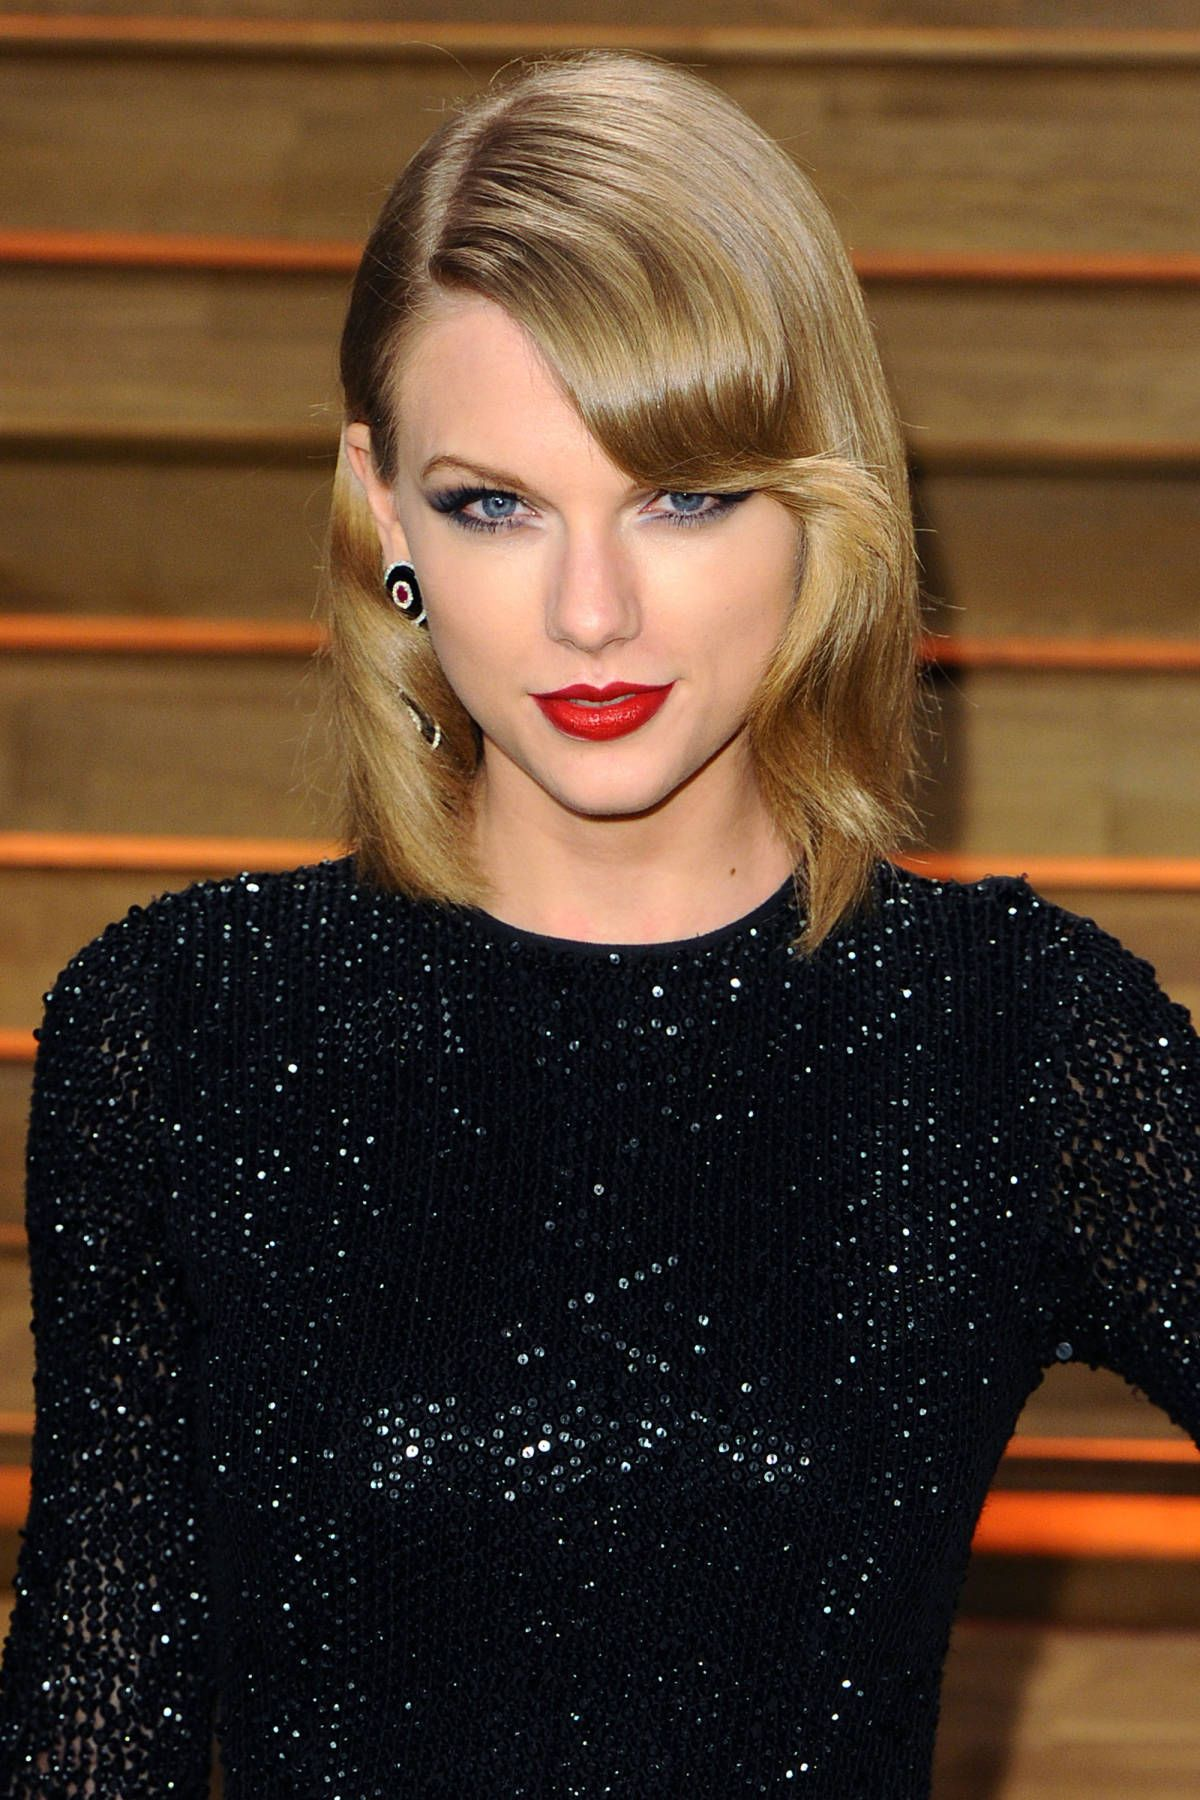 Taylor swift hairstyles taylor swifts curly straight short taylor swift hairstyles taylor swifts curly straight short long hair urmus Image collections